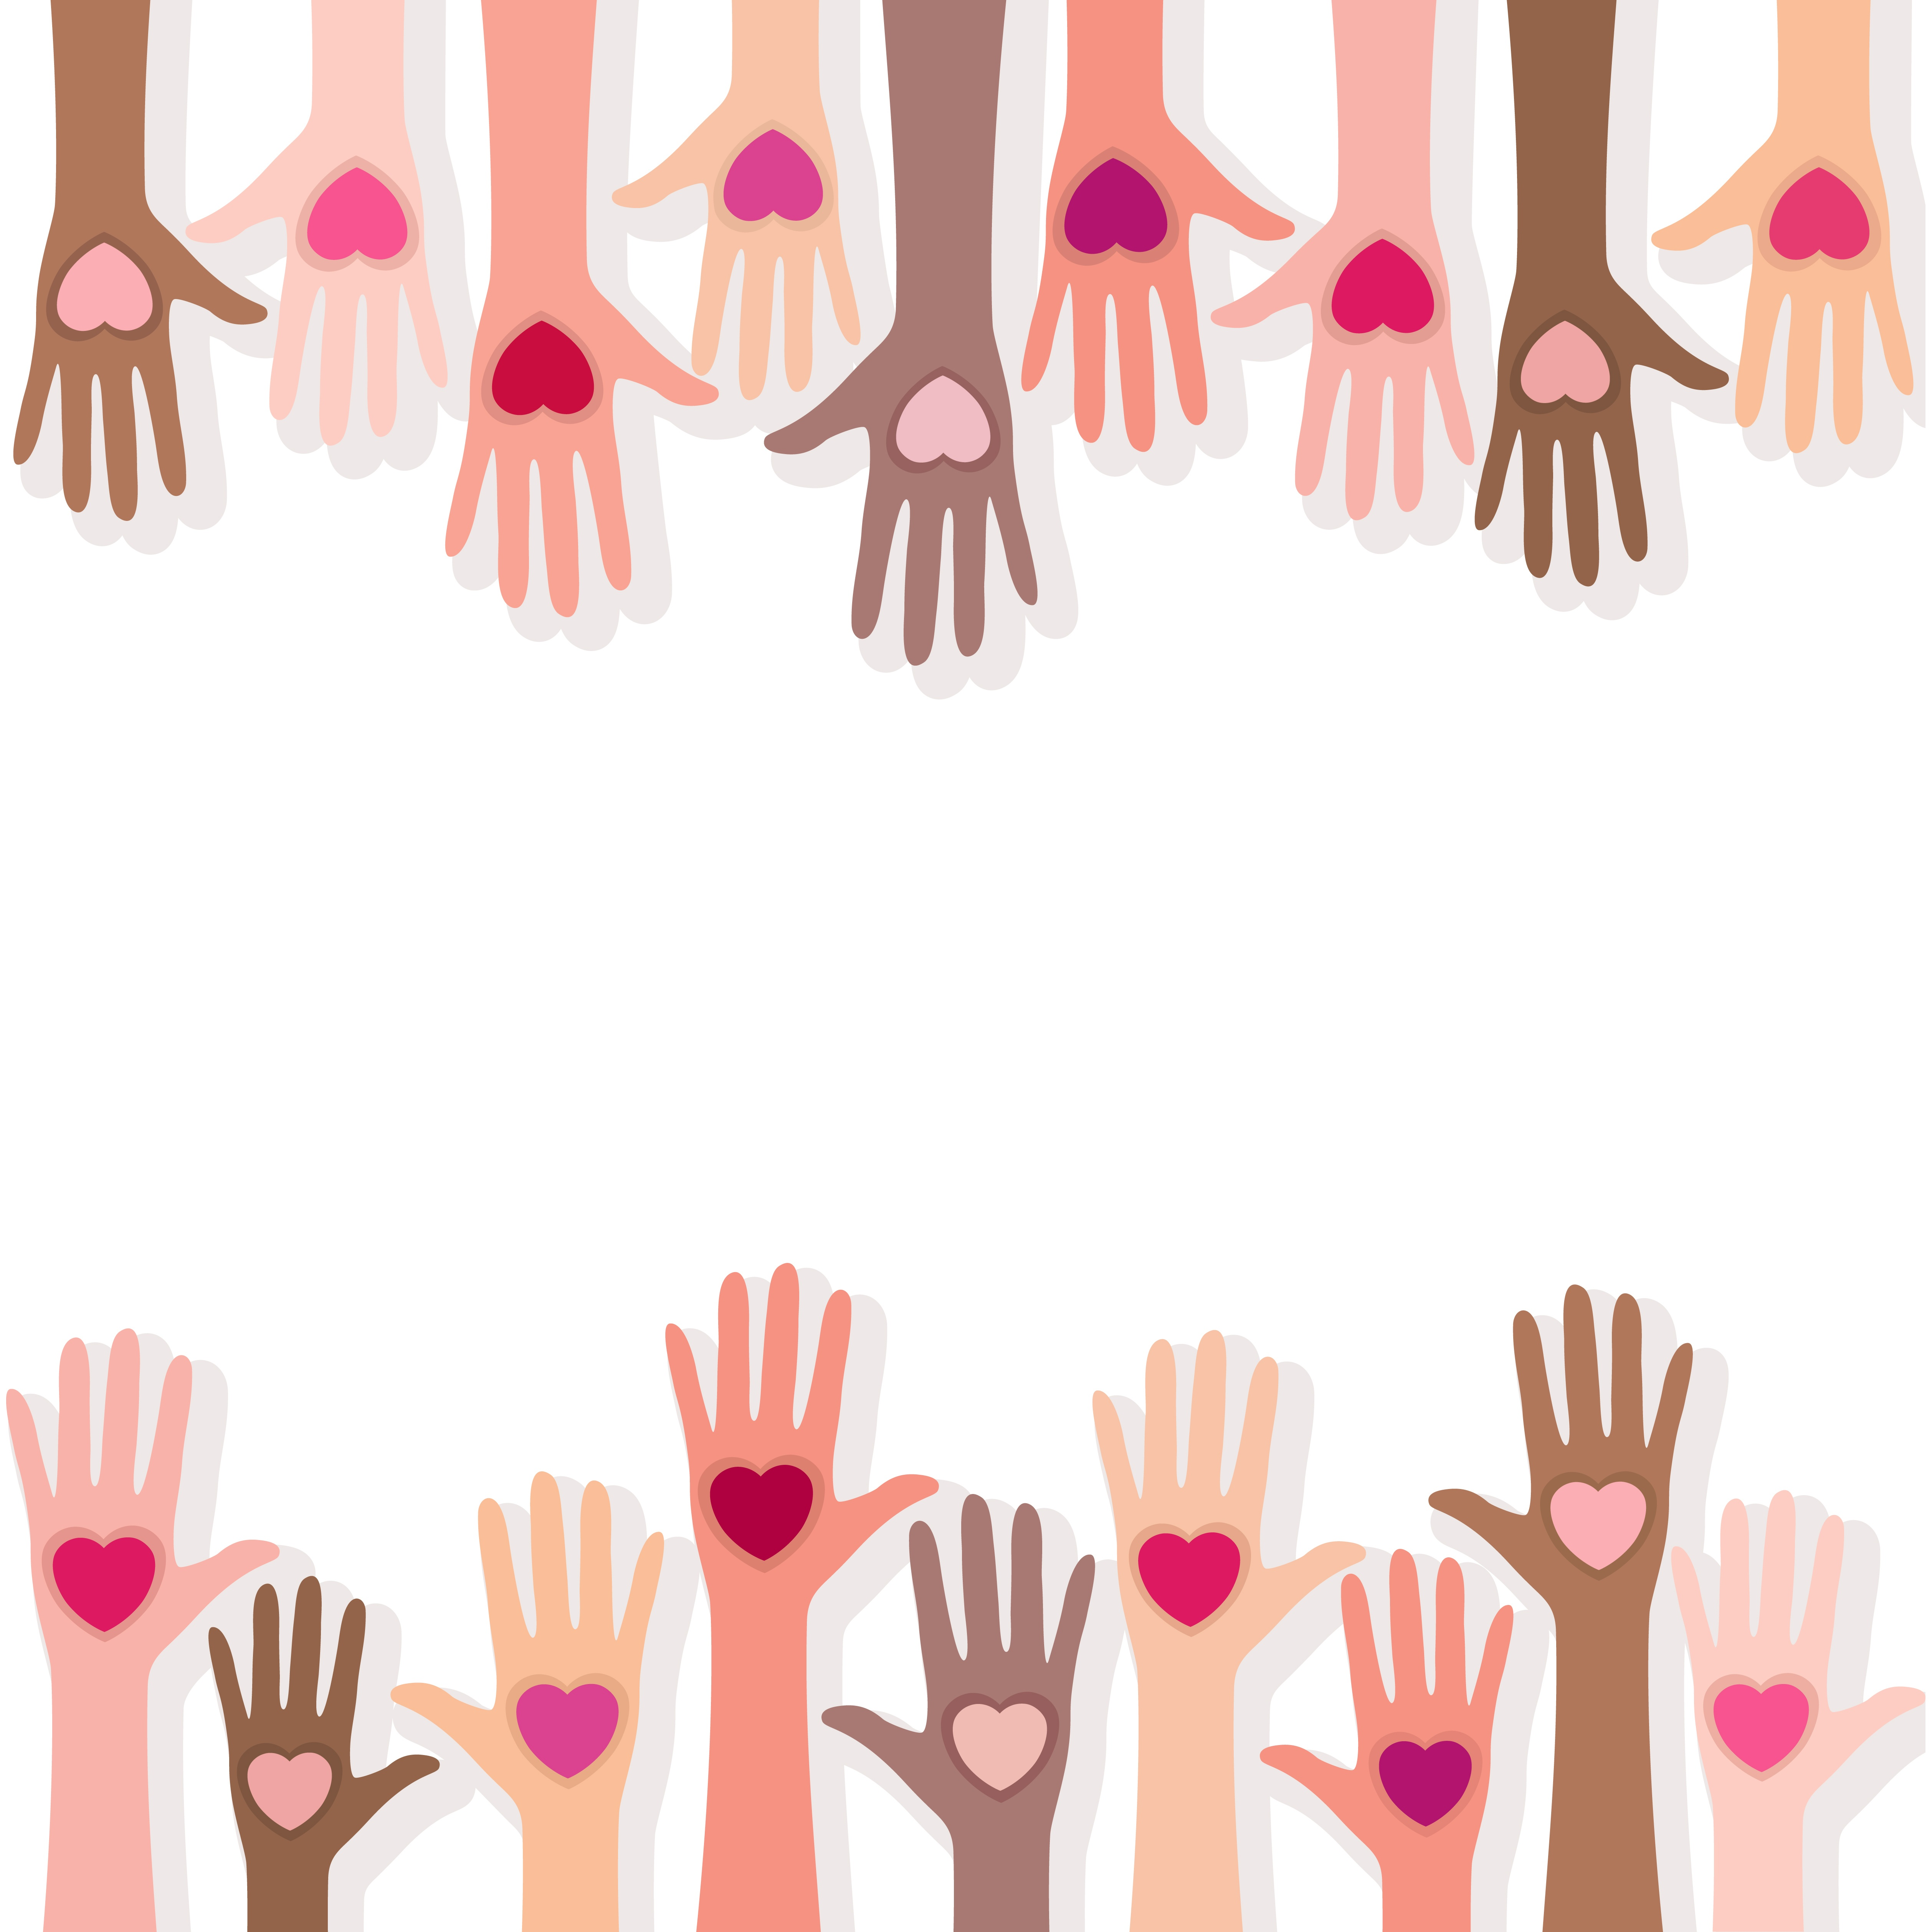 4 Ways to Show Supporters Some Good Old Fashioned Customer Service Love